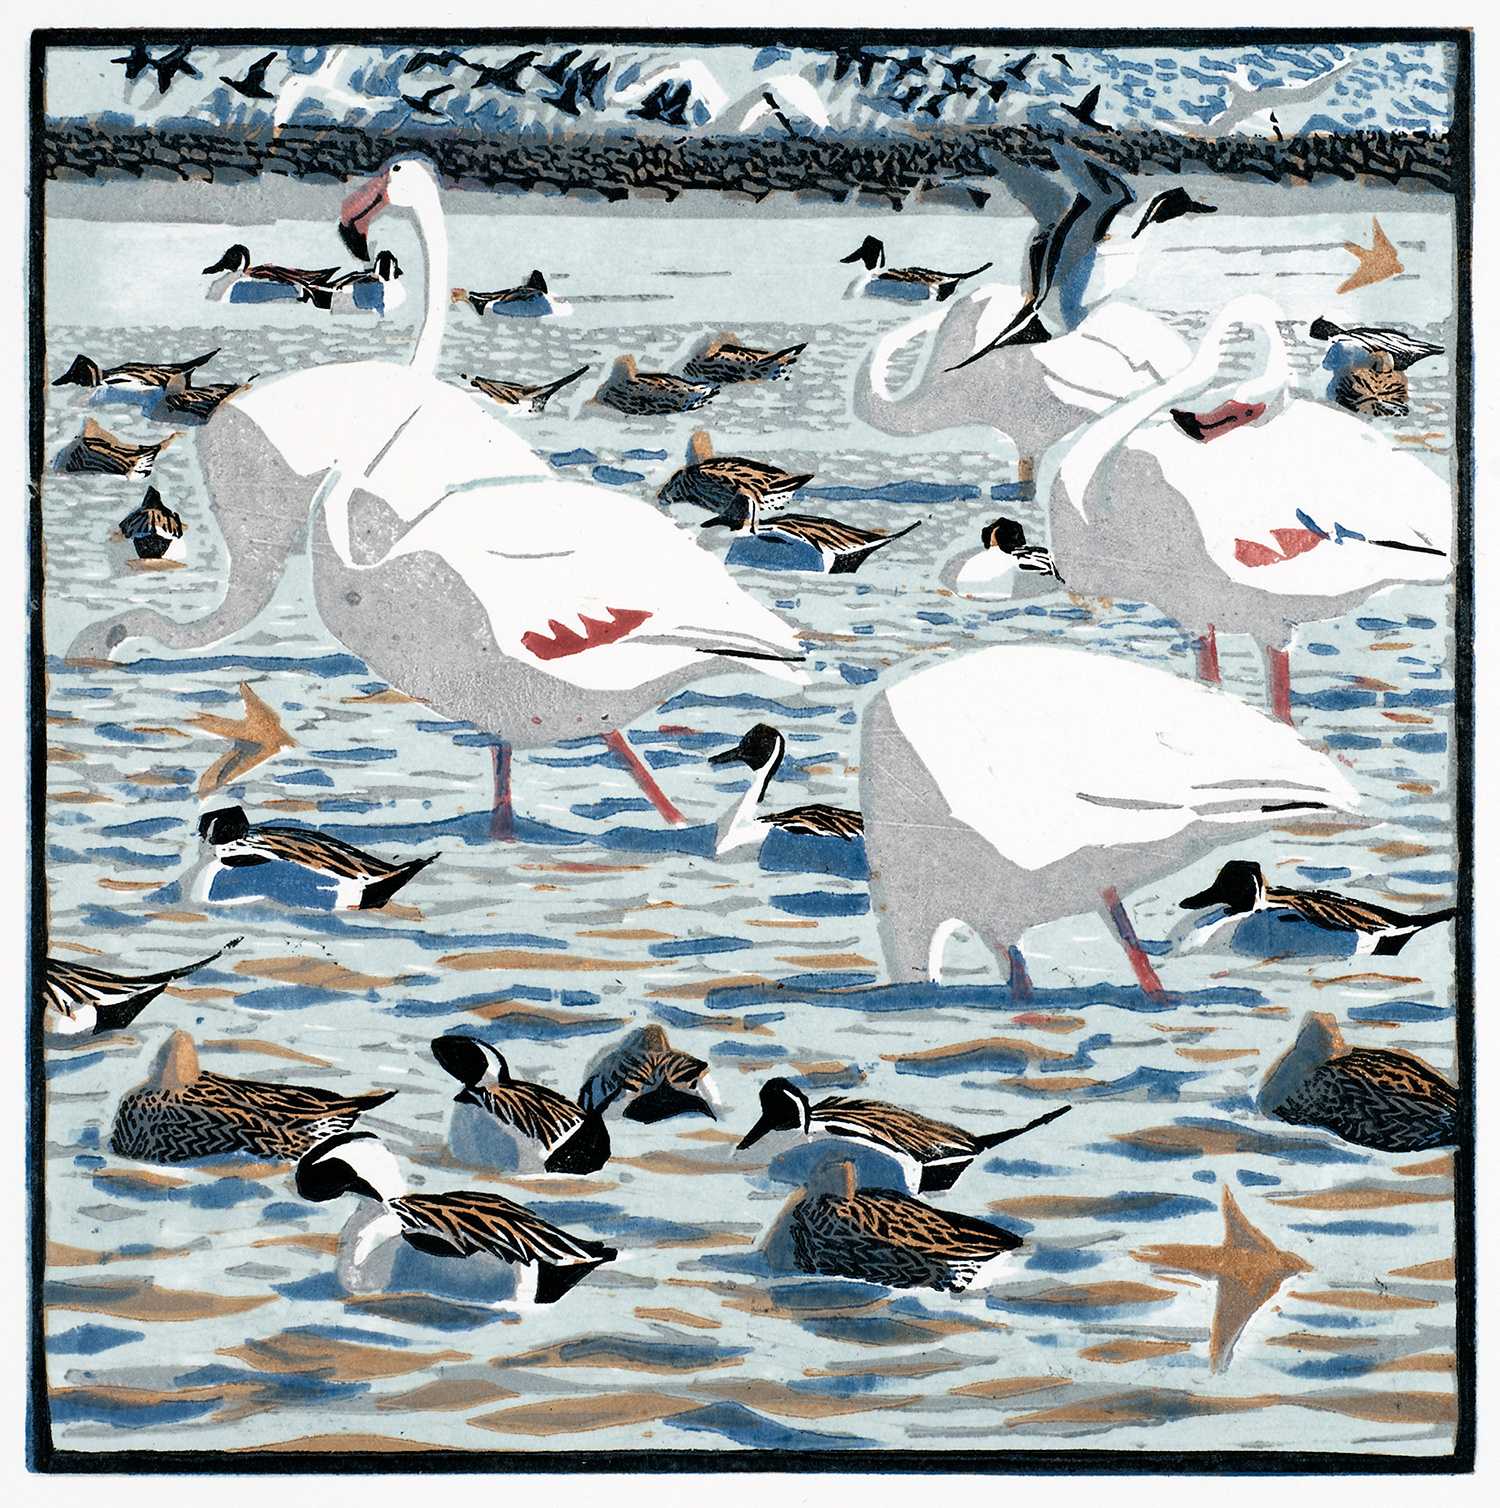 Flamingos & Pintails by Robert Greenhalf